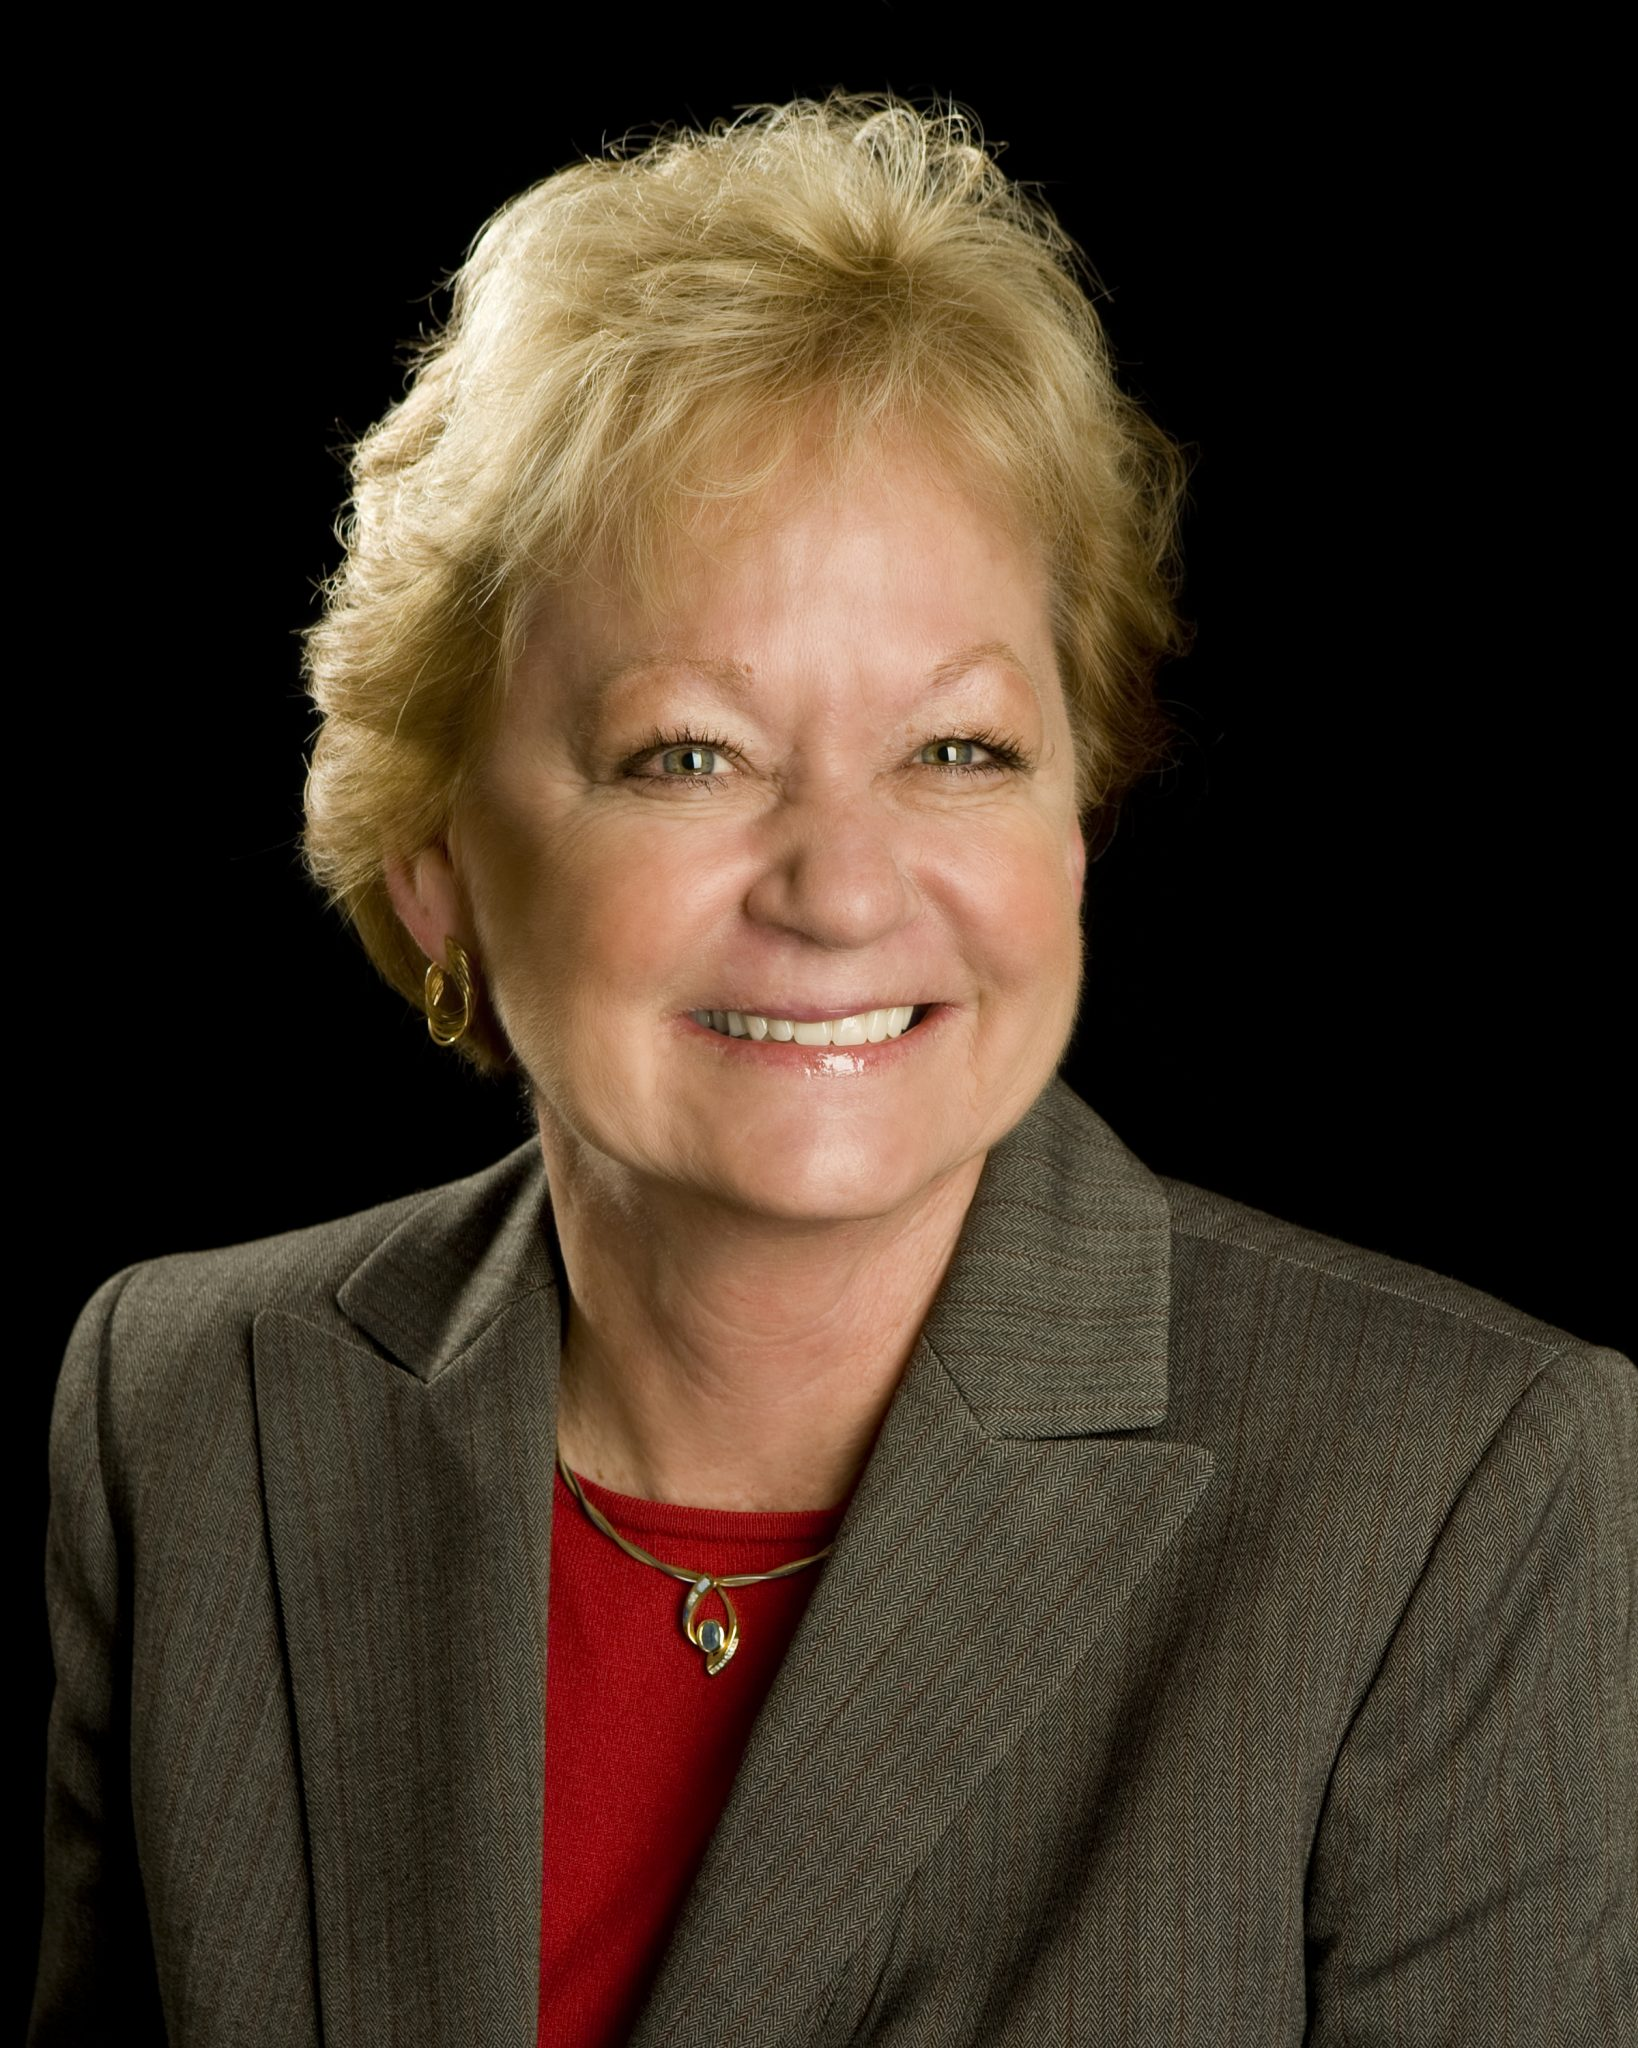 MESA VIEW REGIONAL HOSPITAL'S PATTY HOLDEN ANNOUNCES RETIREMENT, NEW CEO APPOINT